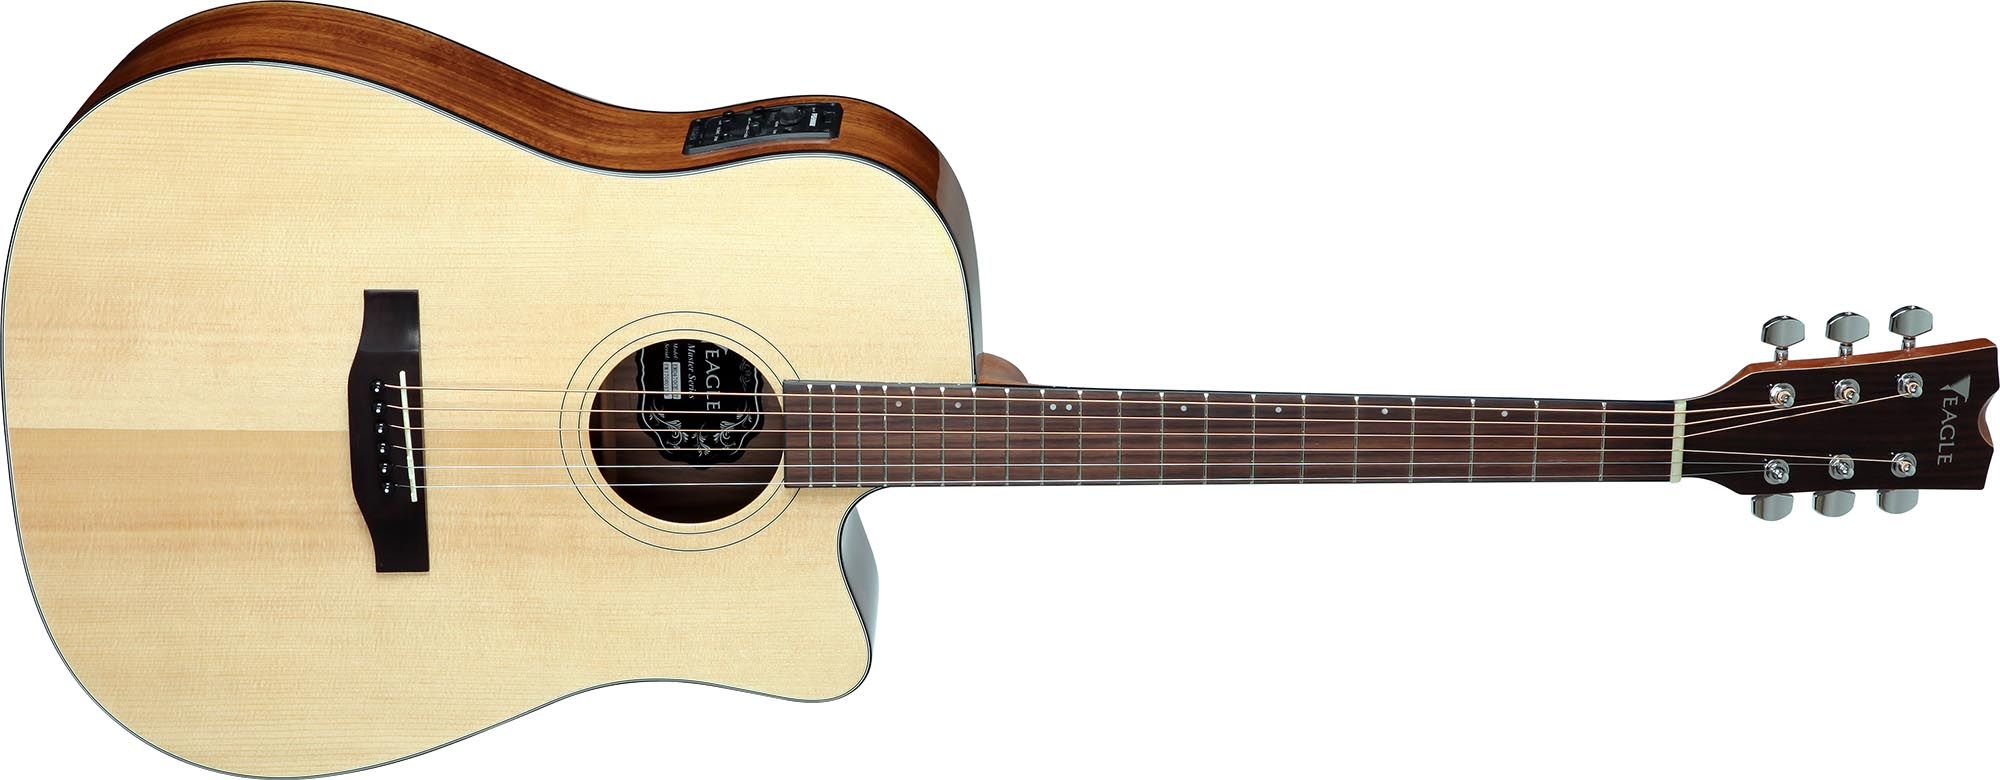 emd470ce violao folk dreadnought tampo solido eagle emd470ce nt natural visao frontal